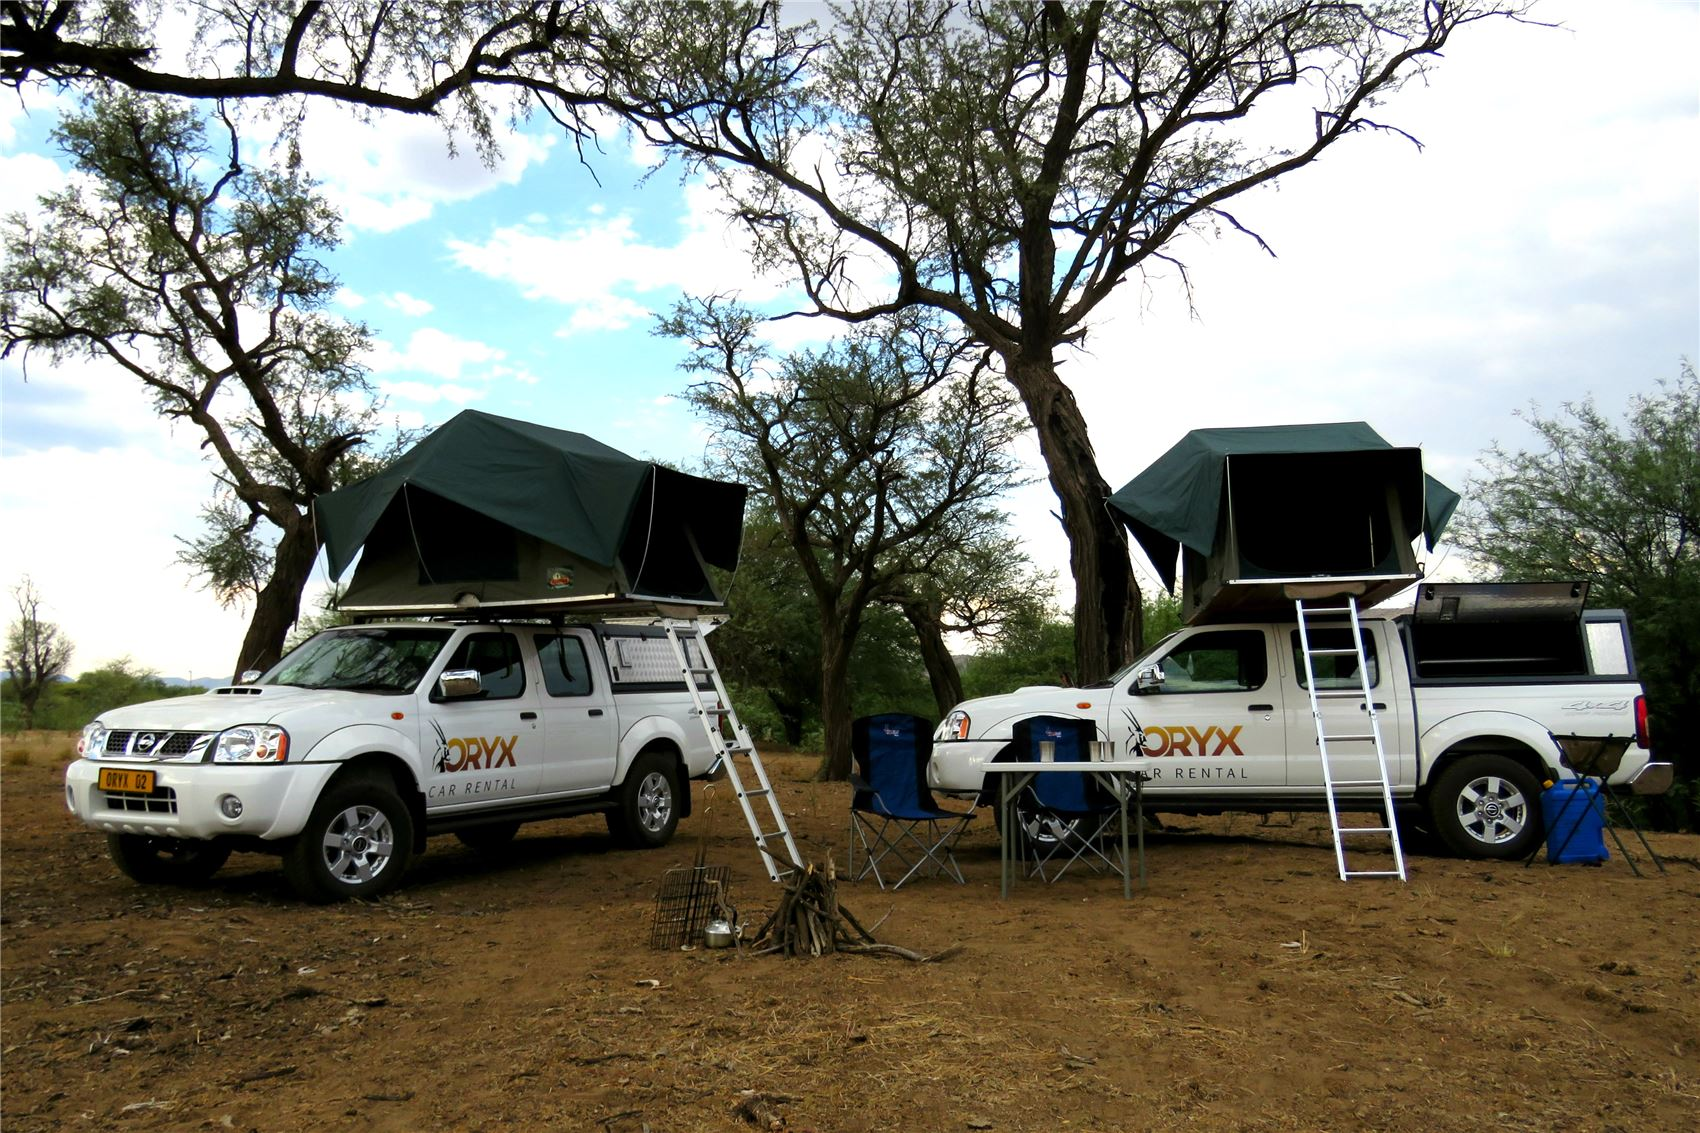 Two 4x4, two with tent